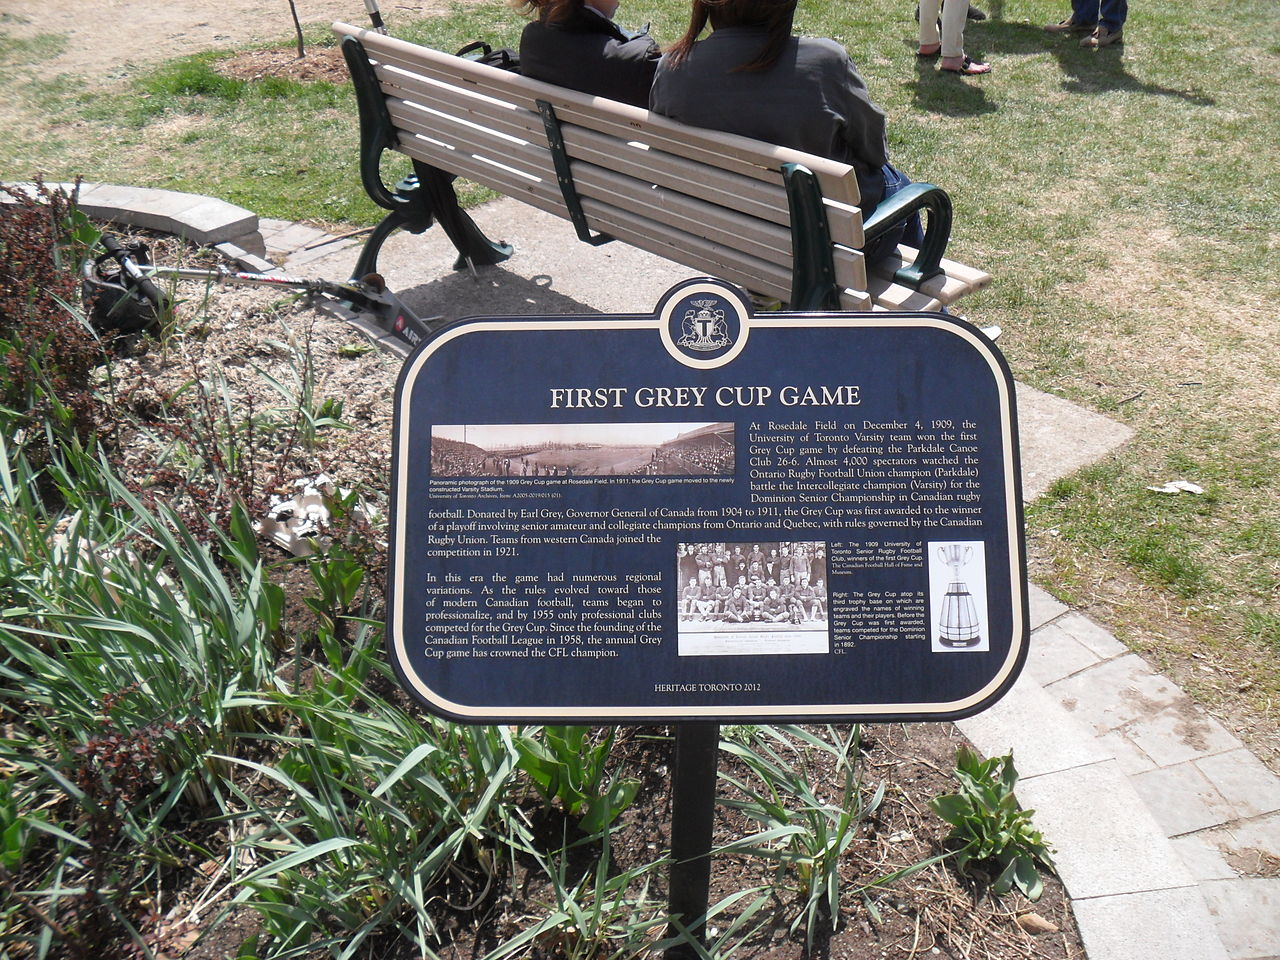 Plaque showing Rosedale Park in Toronto as place of first Grey Cup game